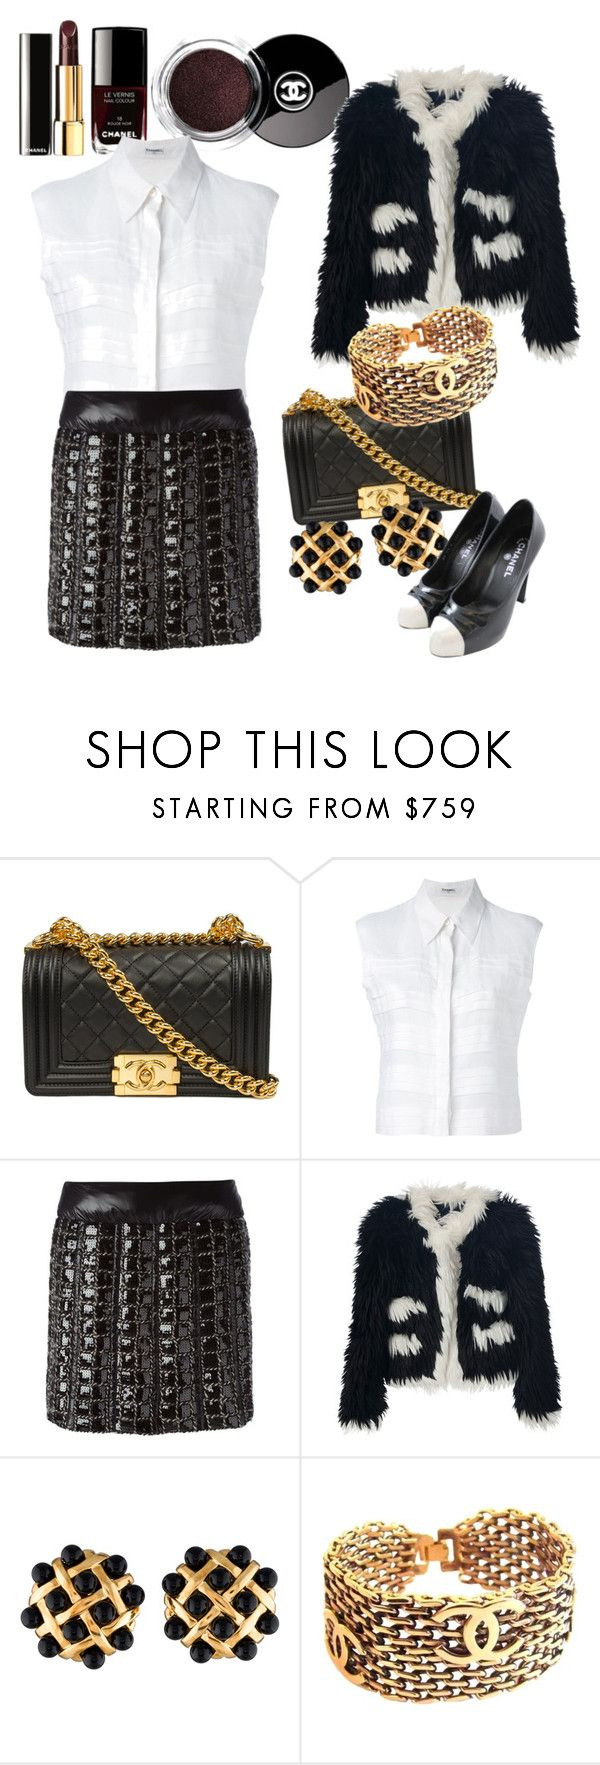 """""""Untitled #273"""" by alexandrawaldorf ❤ liked on Polyvore featuring Chanel, women's clothing, women, female, woman, misses and juniors"""